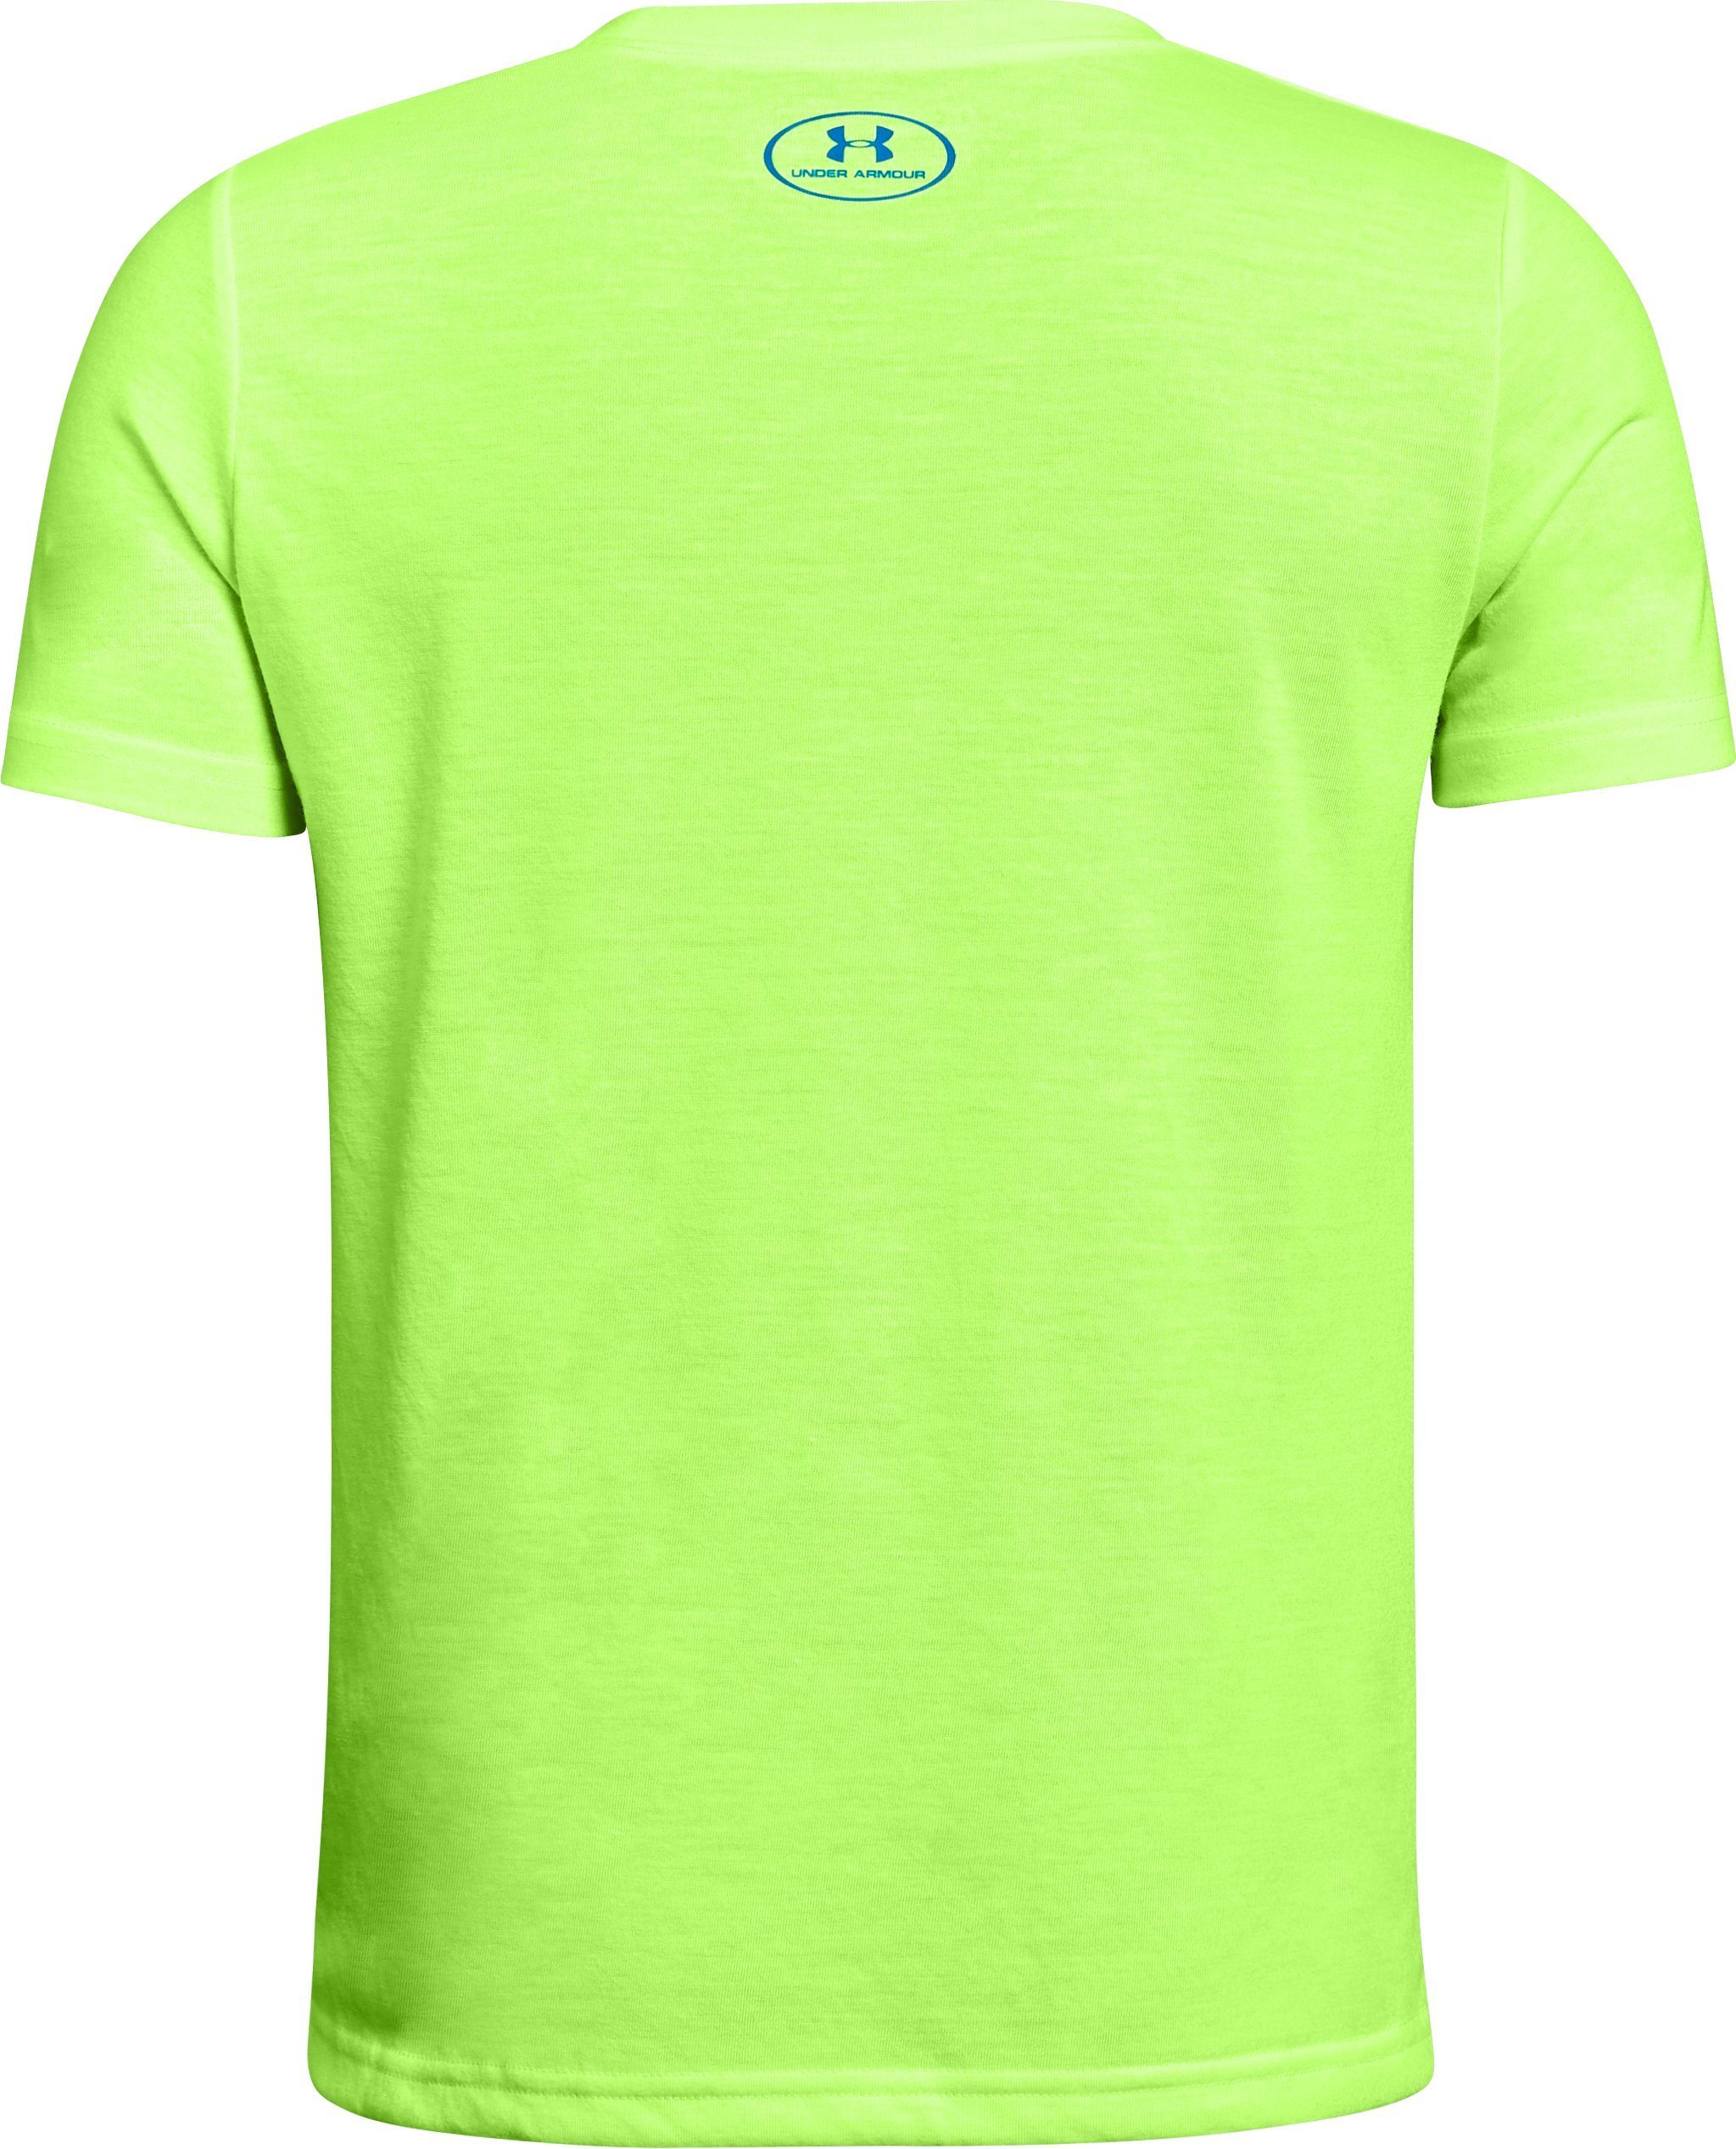 Boys' UA Hybrid Big Logo T-Shirt, QUIRKY LIME, undefined